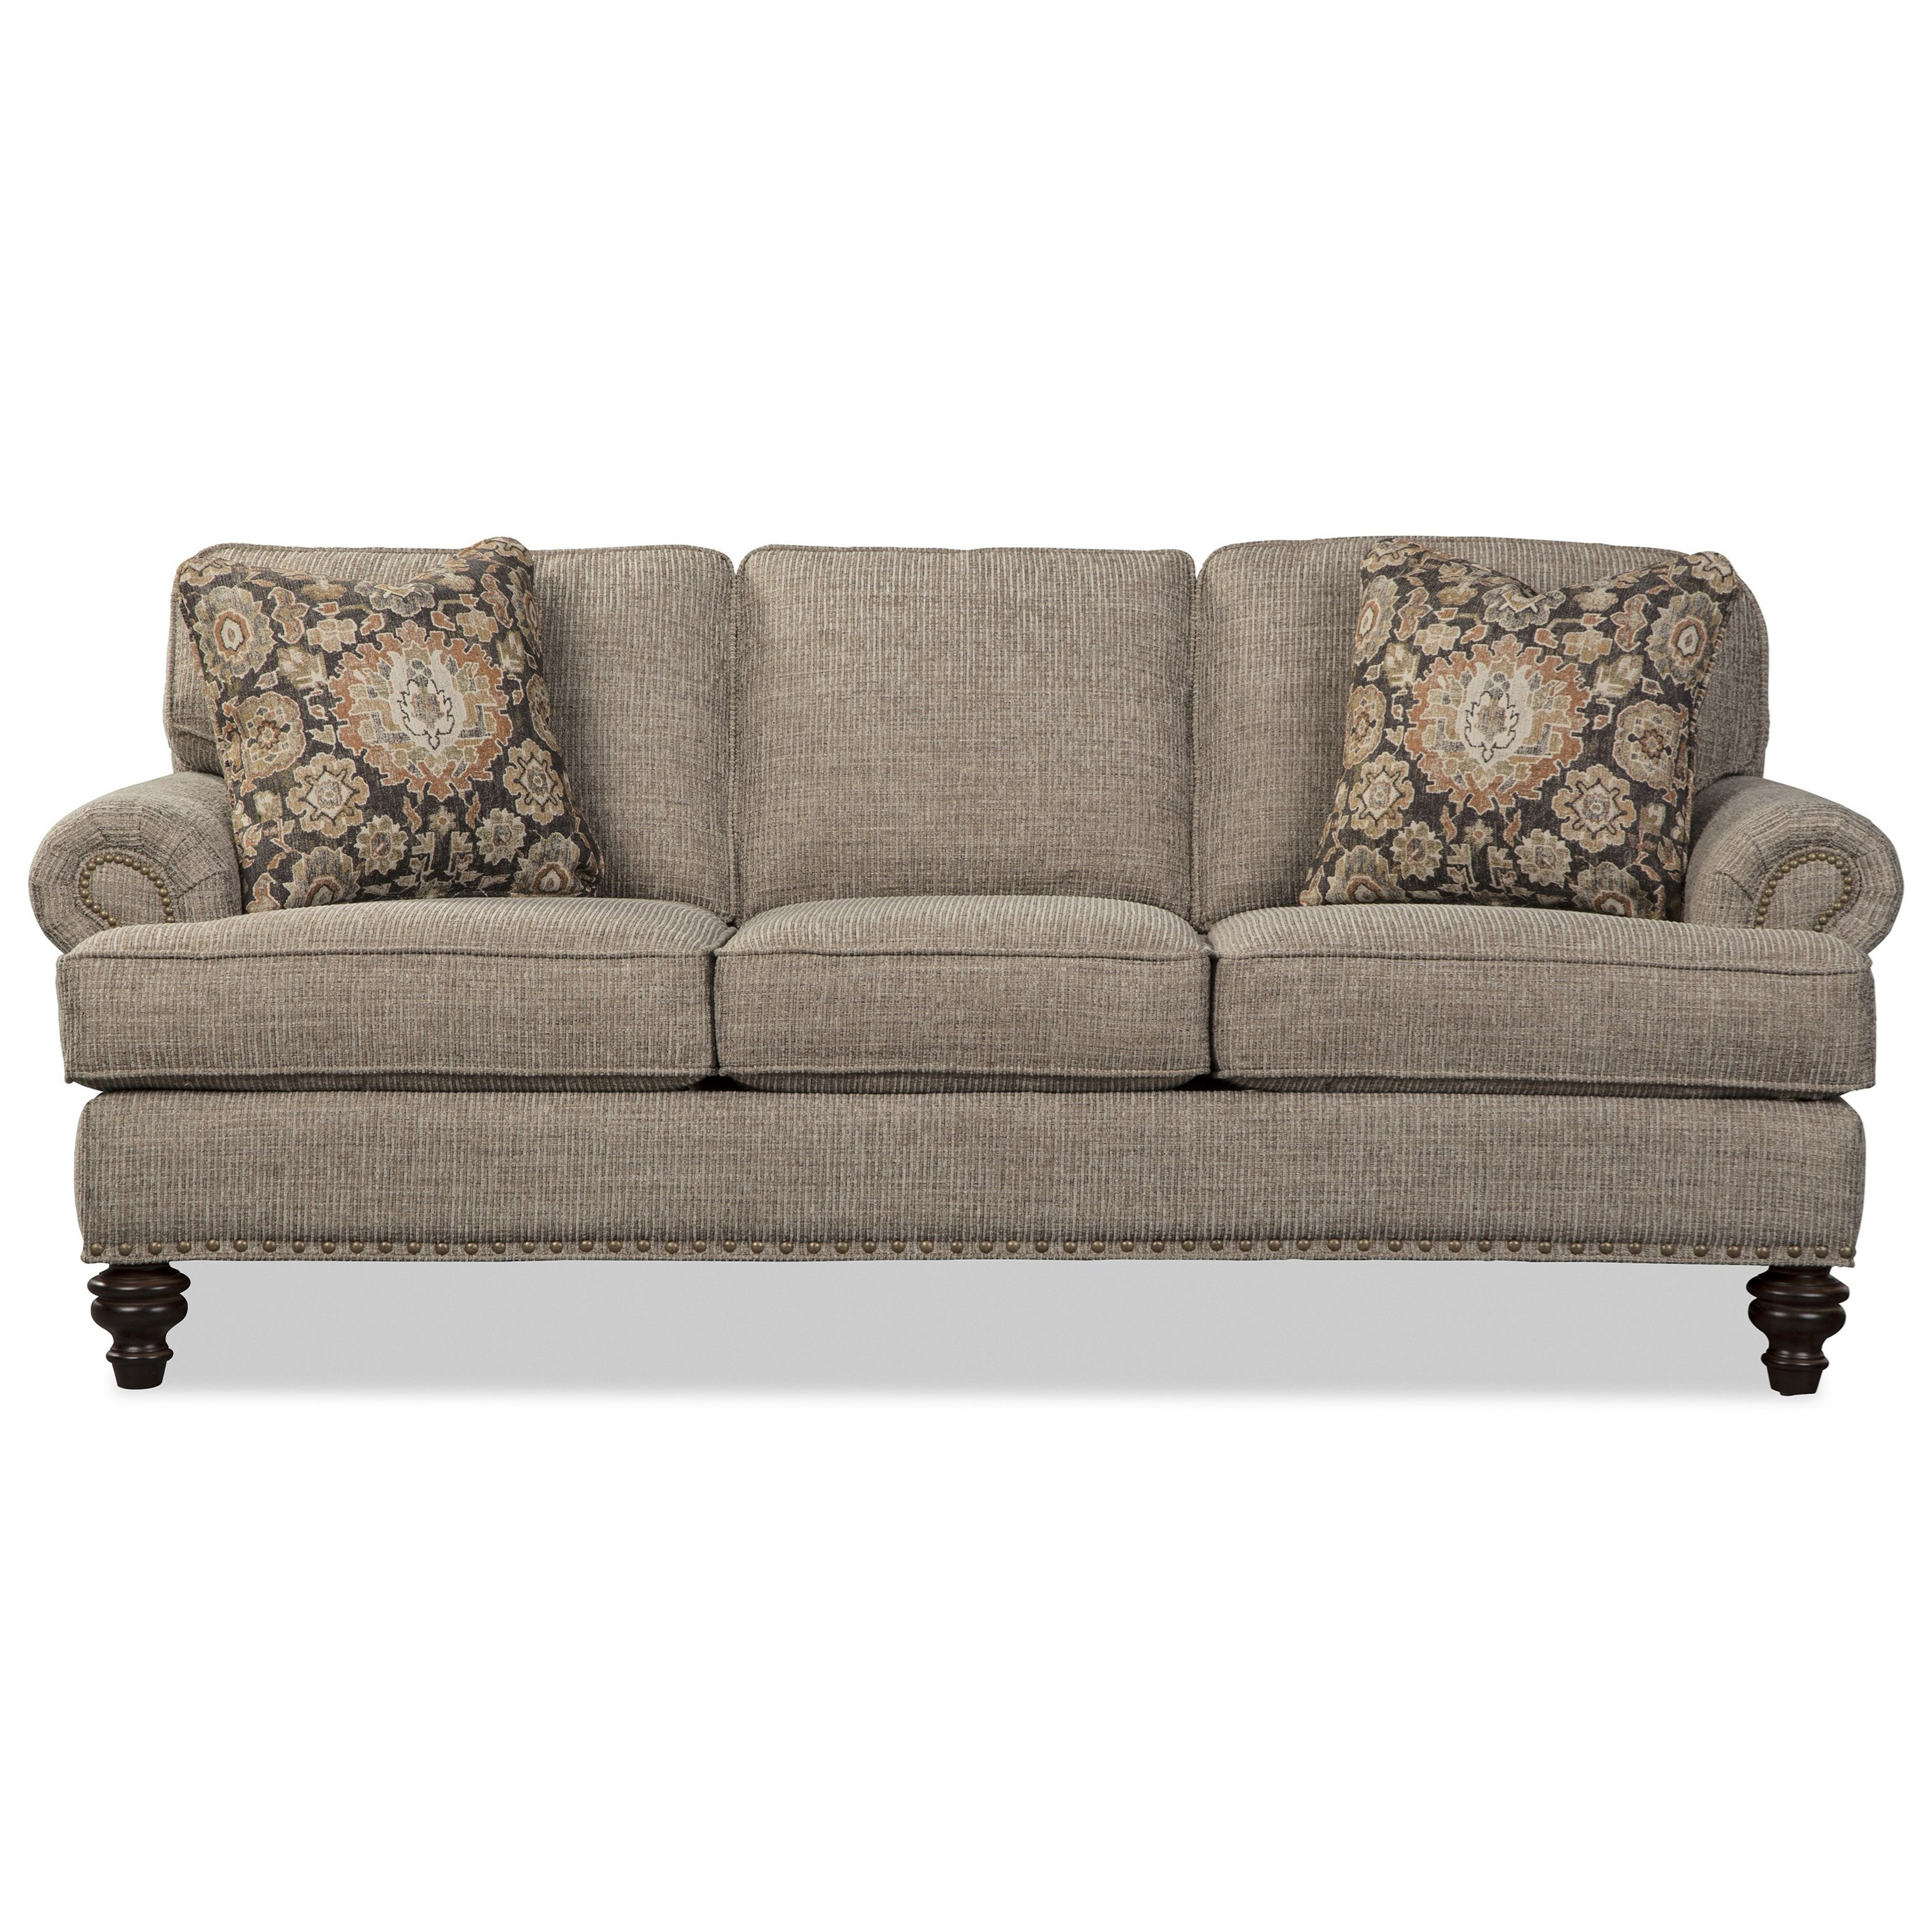 Astounding Craftmaster 791450 791450 Traditional Sofa With Nailheads On Caraccident5 Cool Chair Designs And Ideas Caraccident5Info